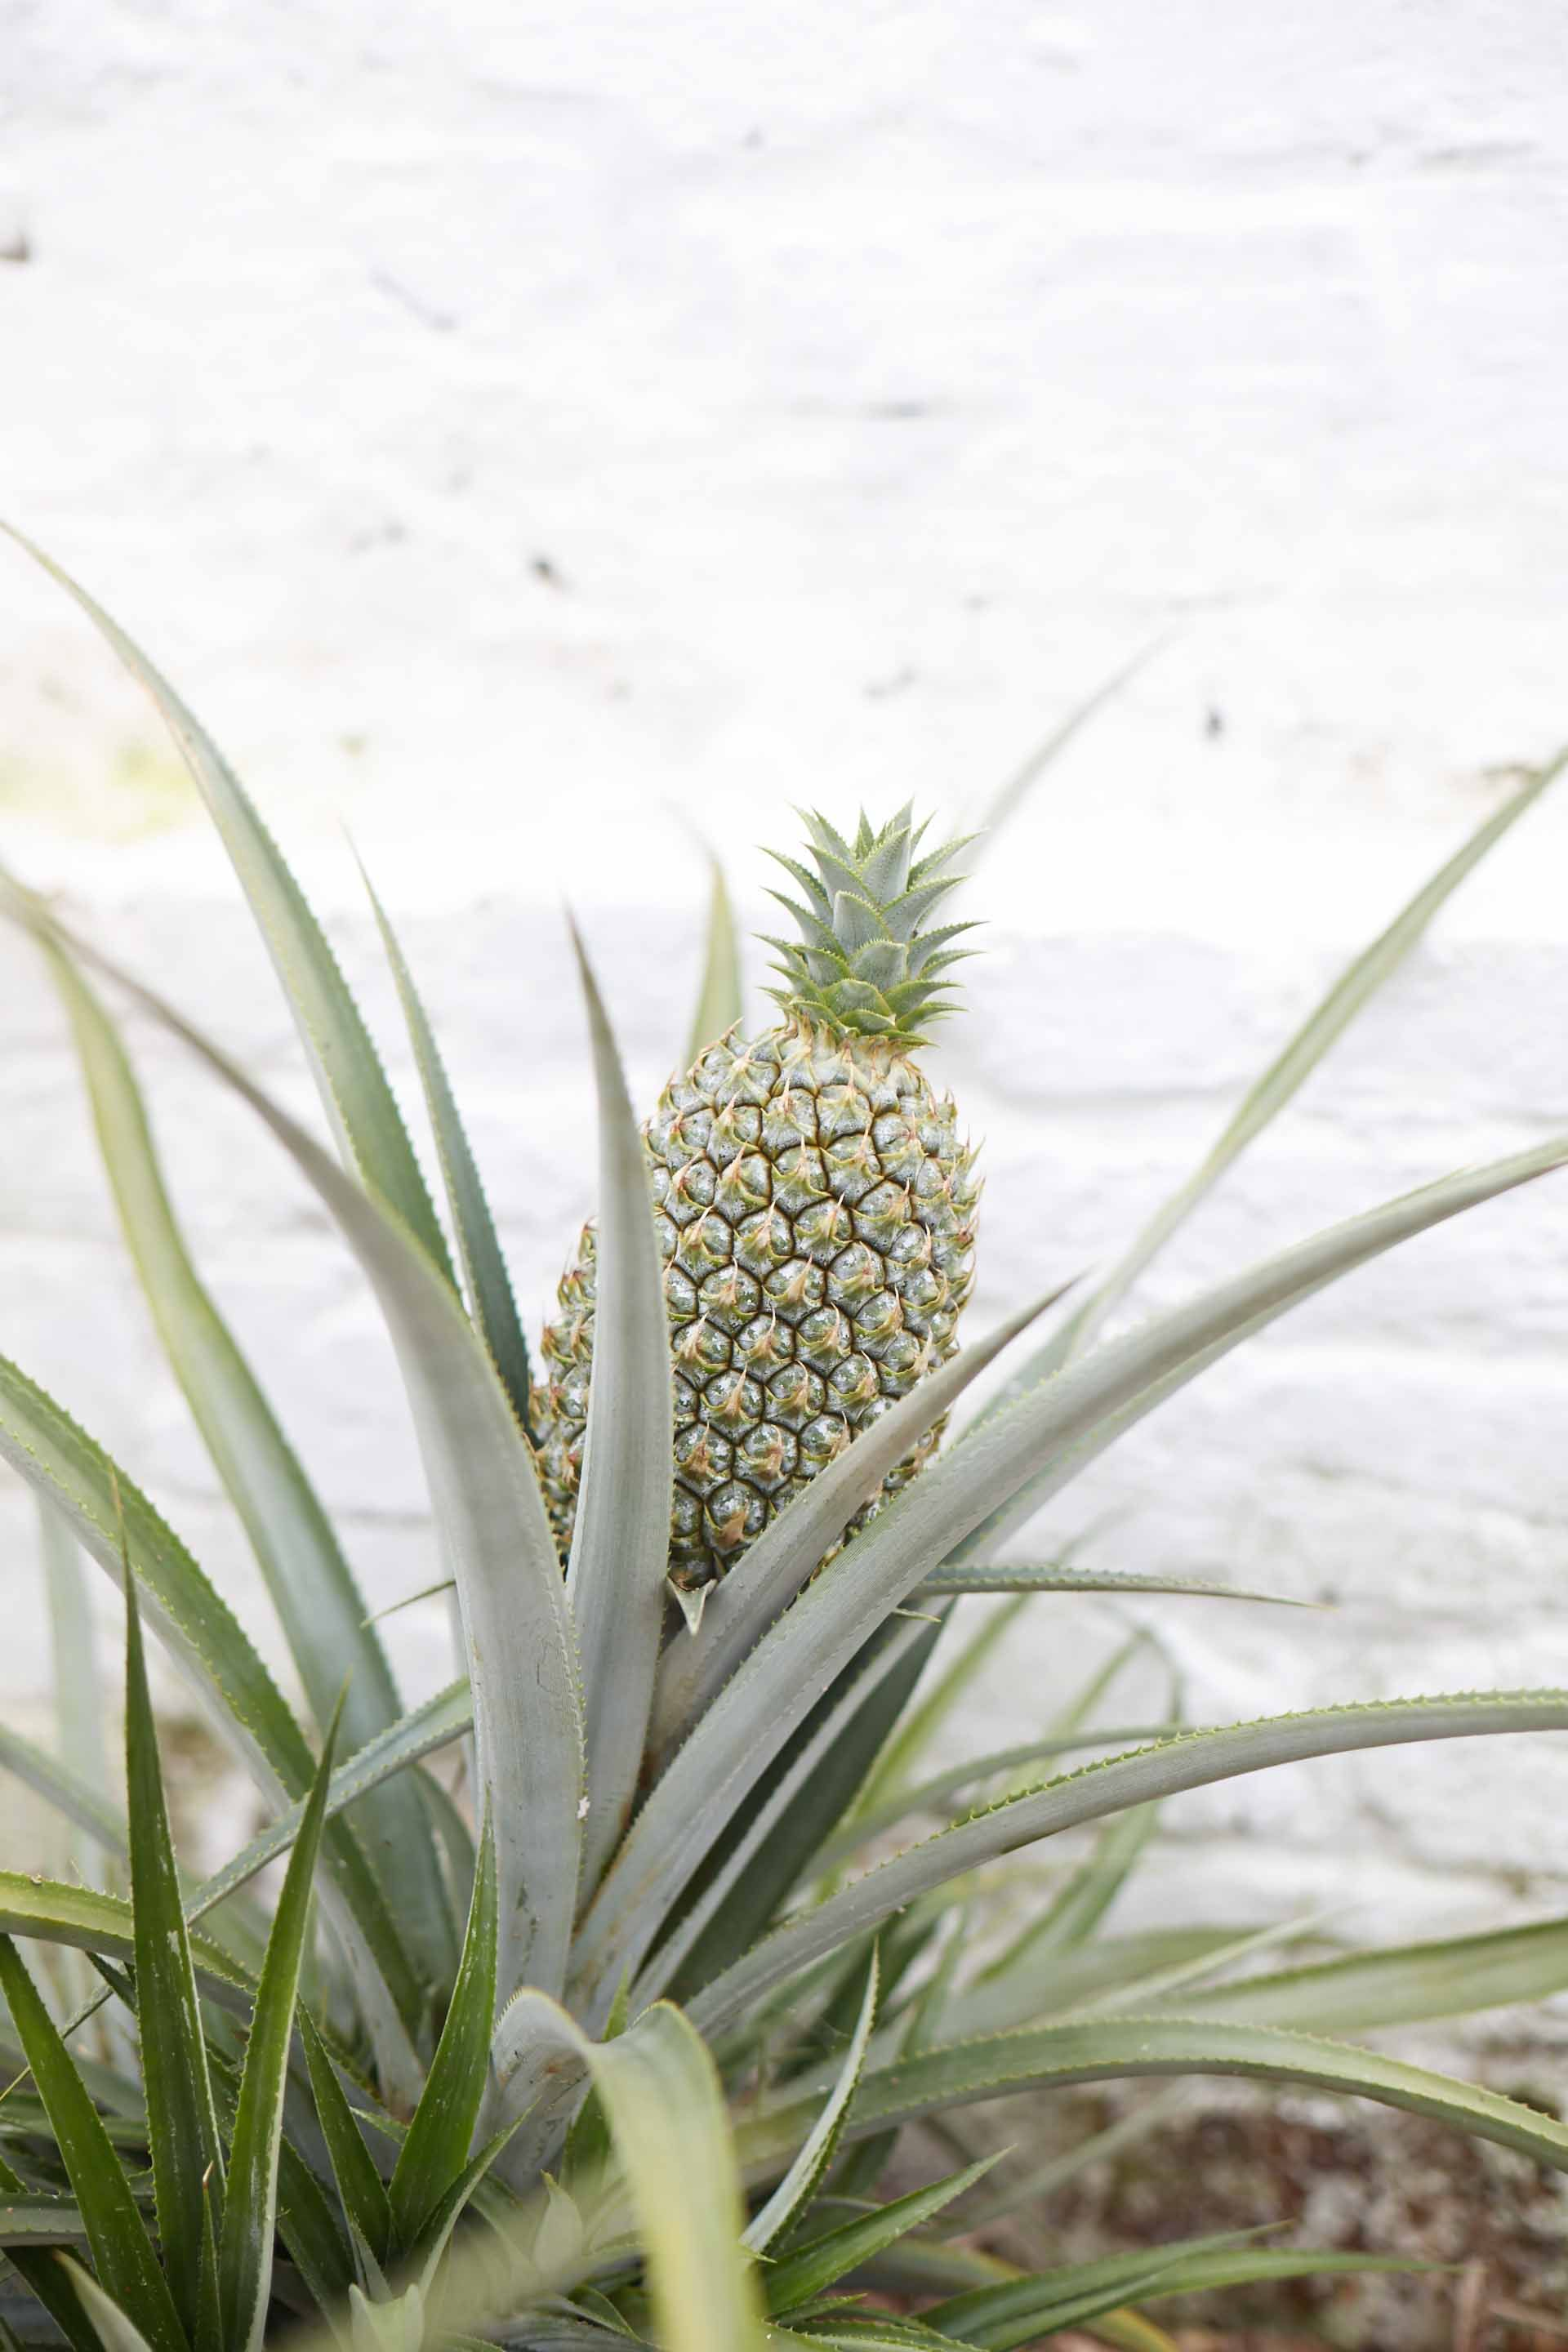 41a5e8873a25199c616a5dd7e21291e5 - Pineapples From The Lost Gardens Of Heligan